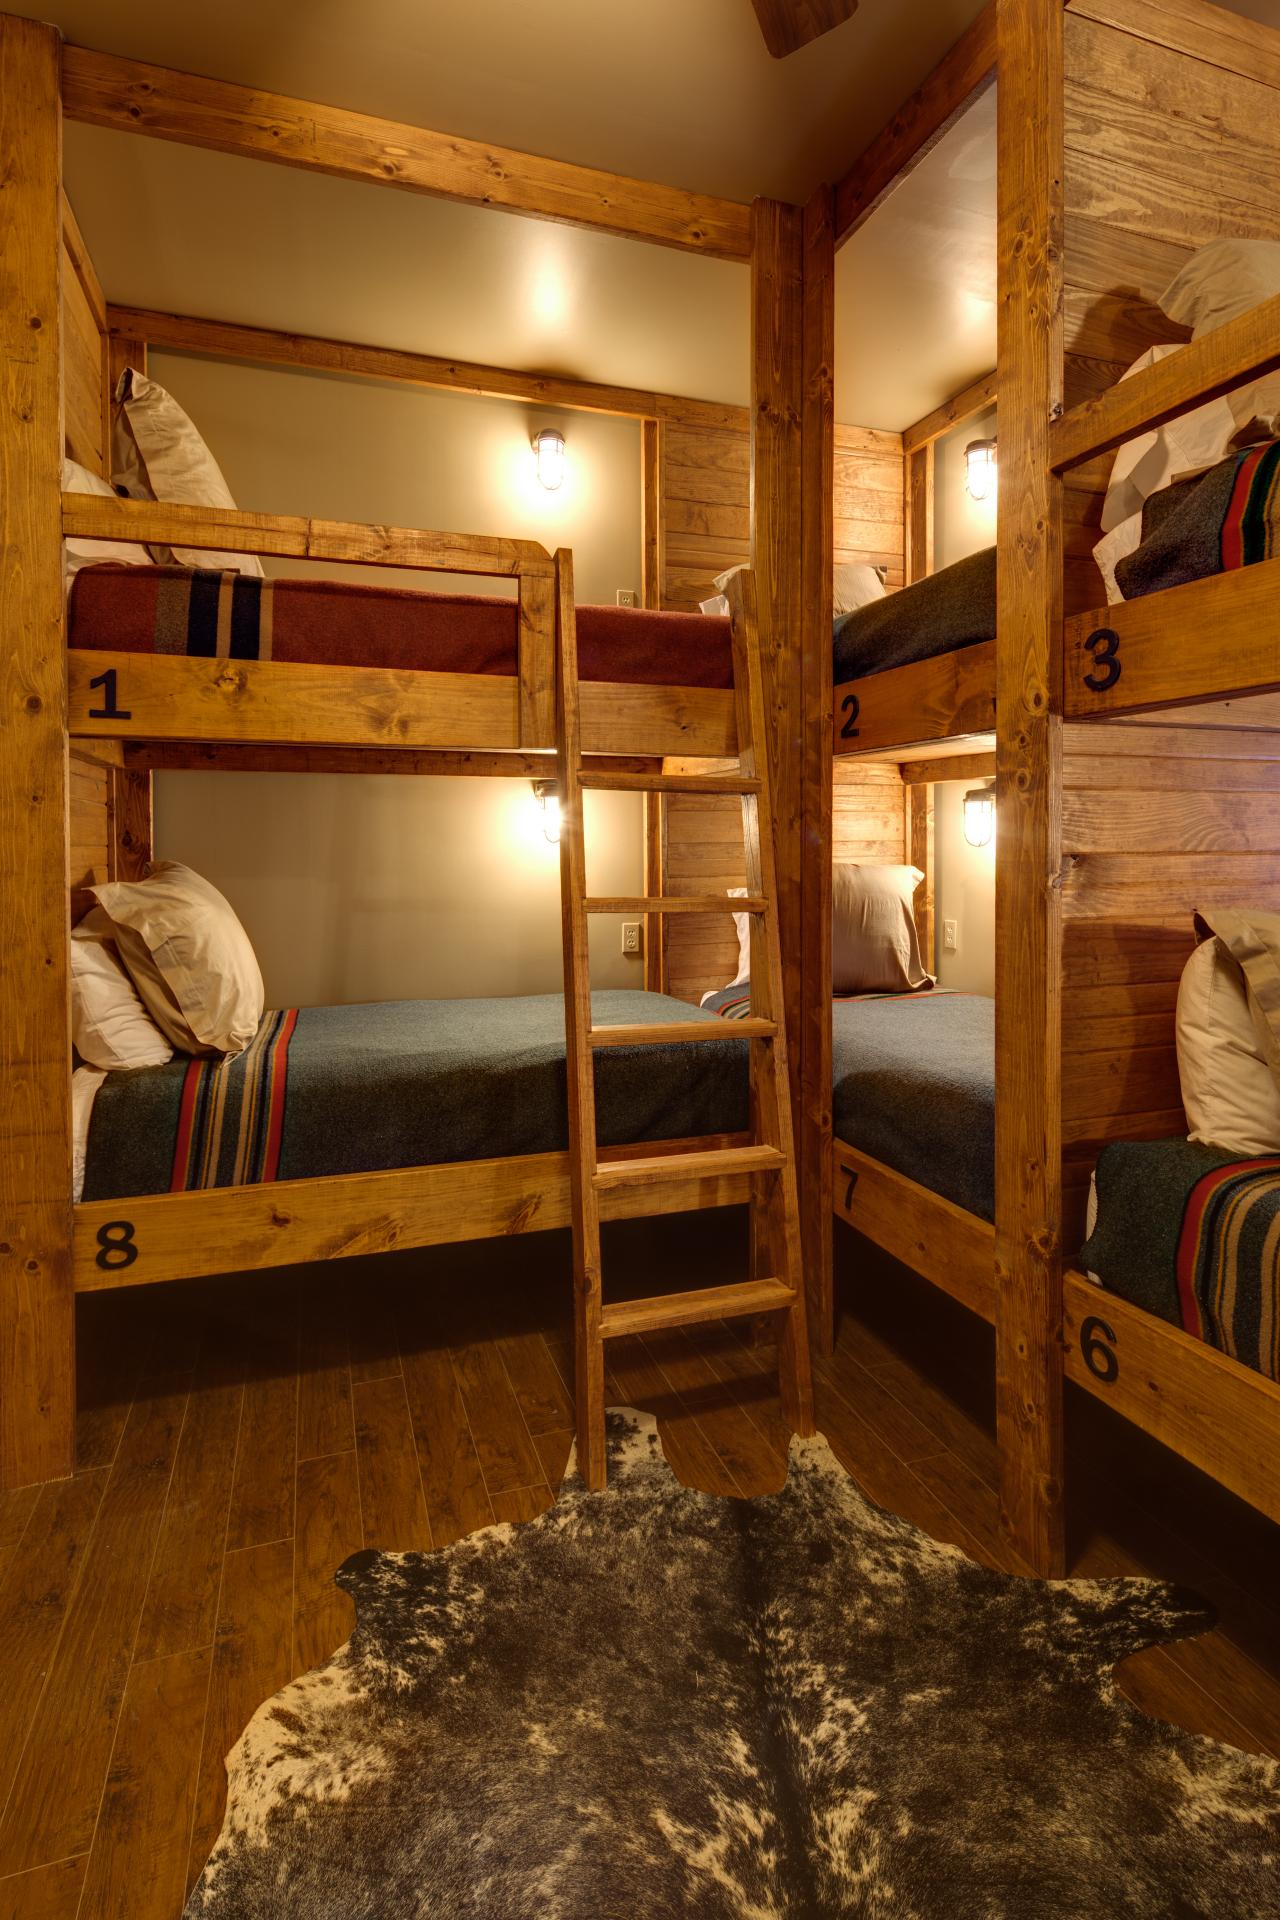 Photos hgtv Bunk room designs